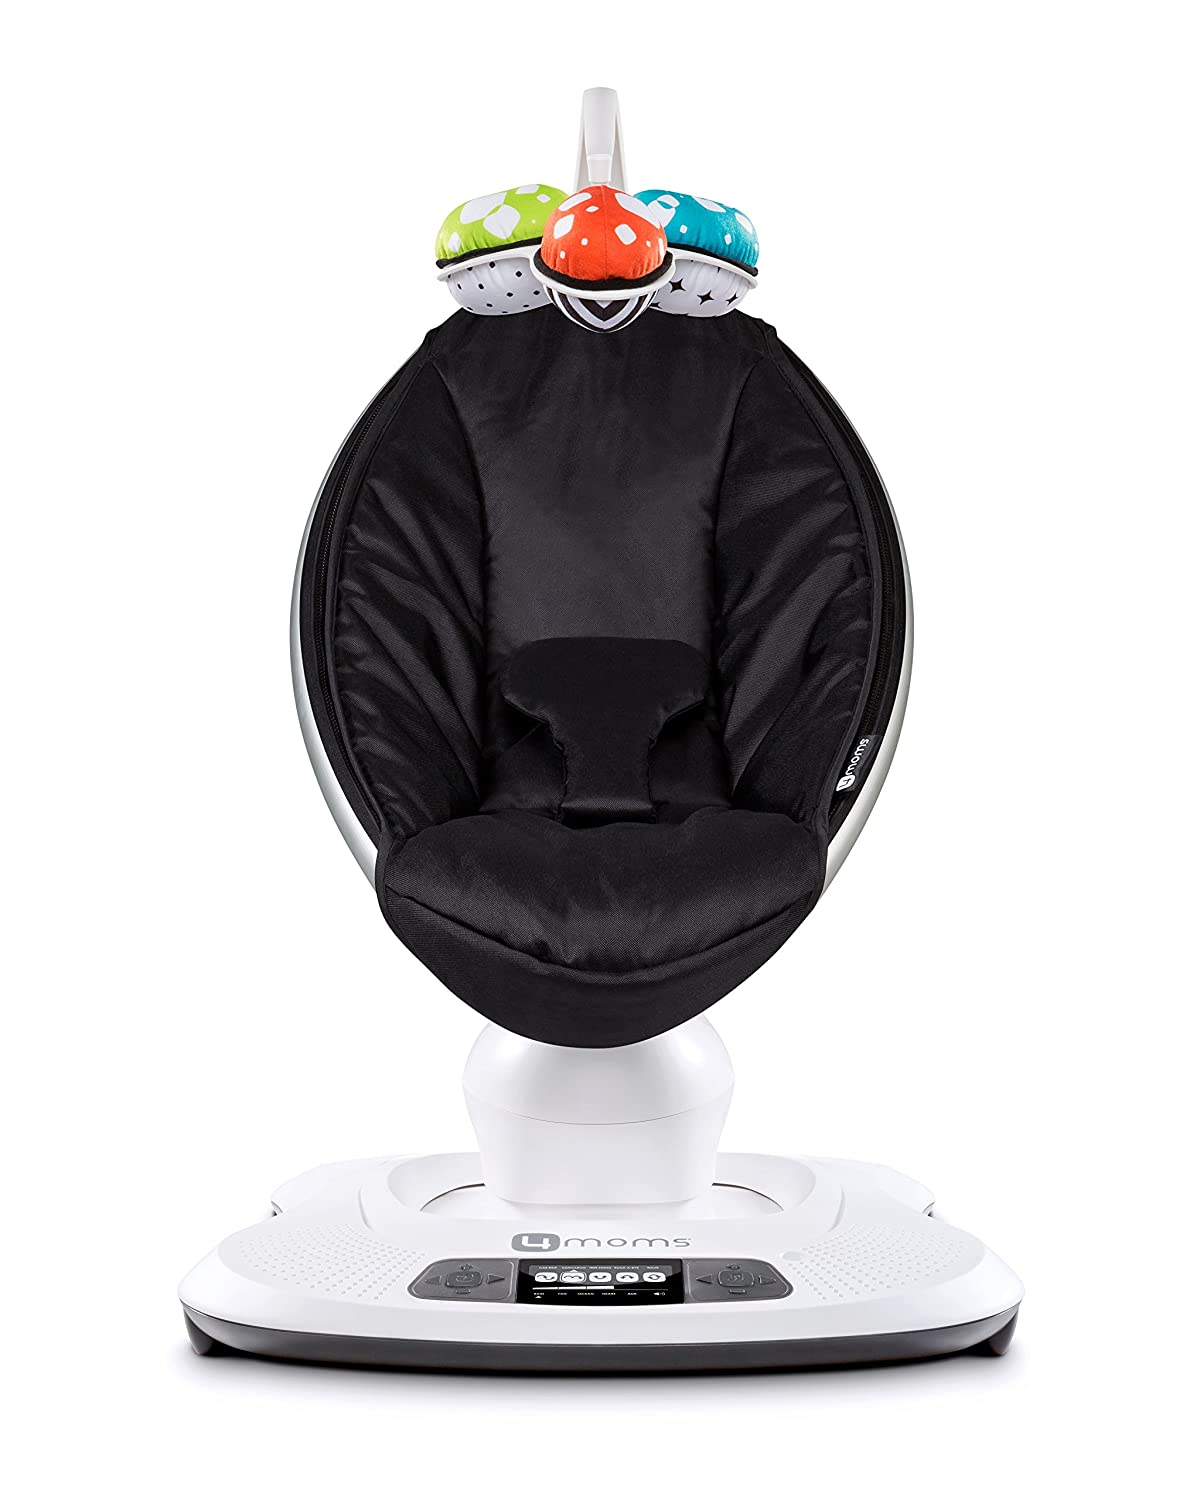 4moms 2015 mamaRoo Infant Seat with Bluetooth Classic Black